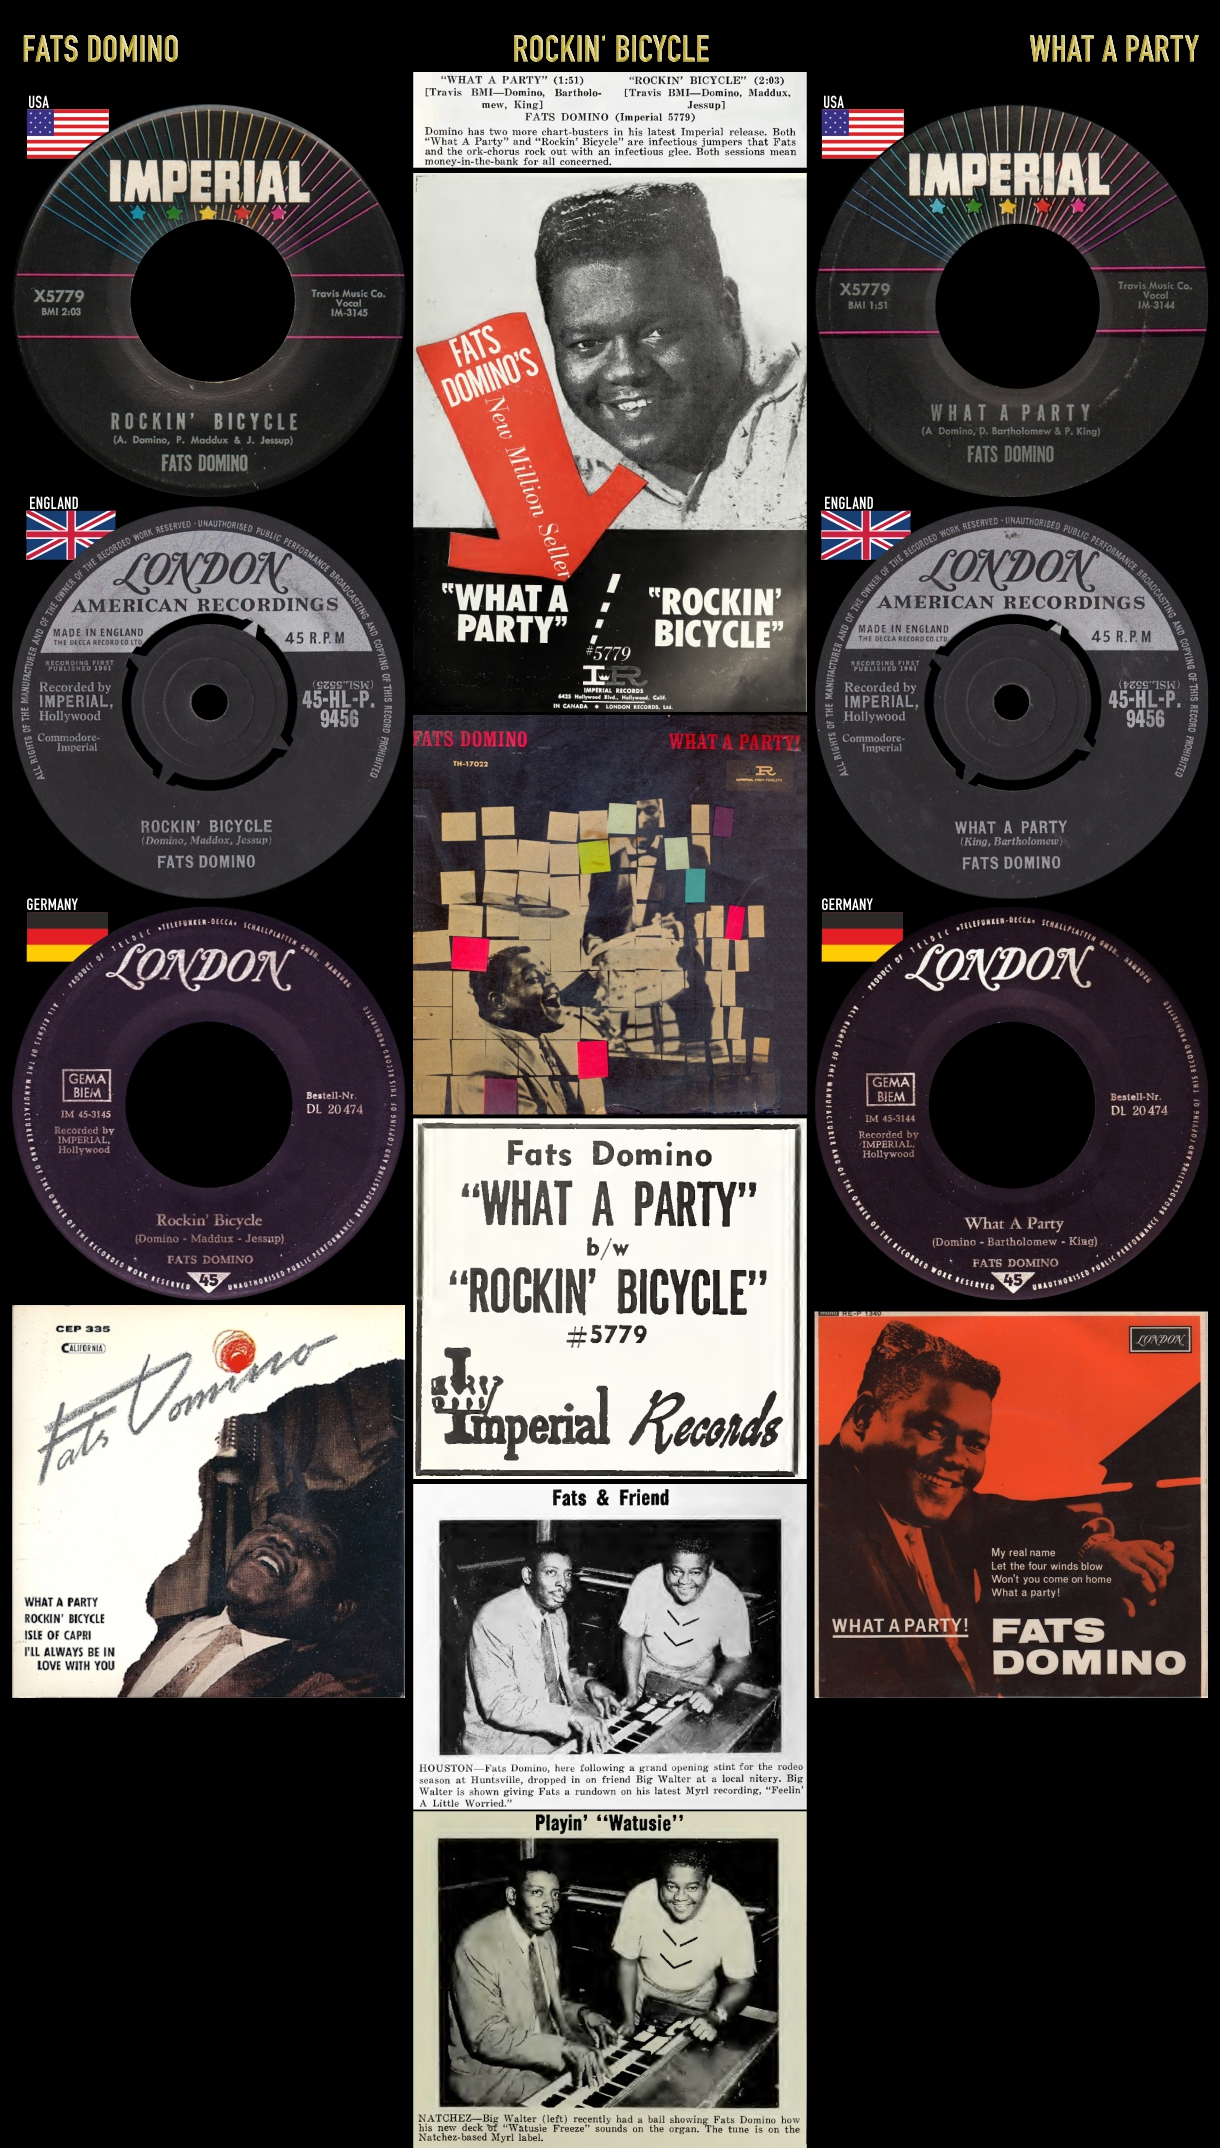 610930_Fats Domino_What A Party_Rockin' Bicycle